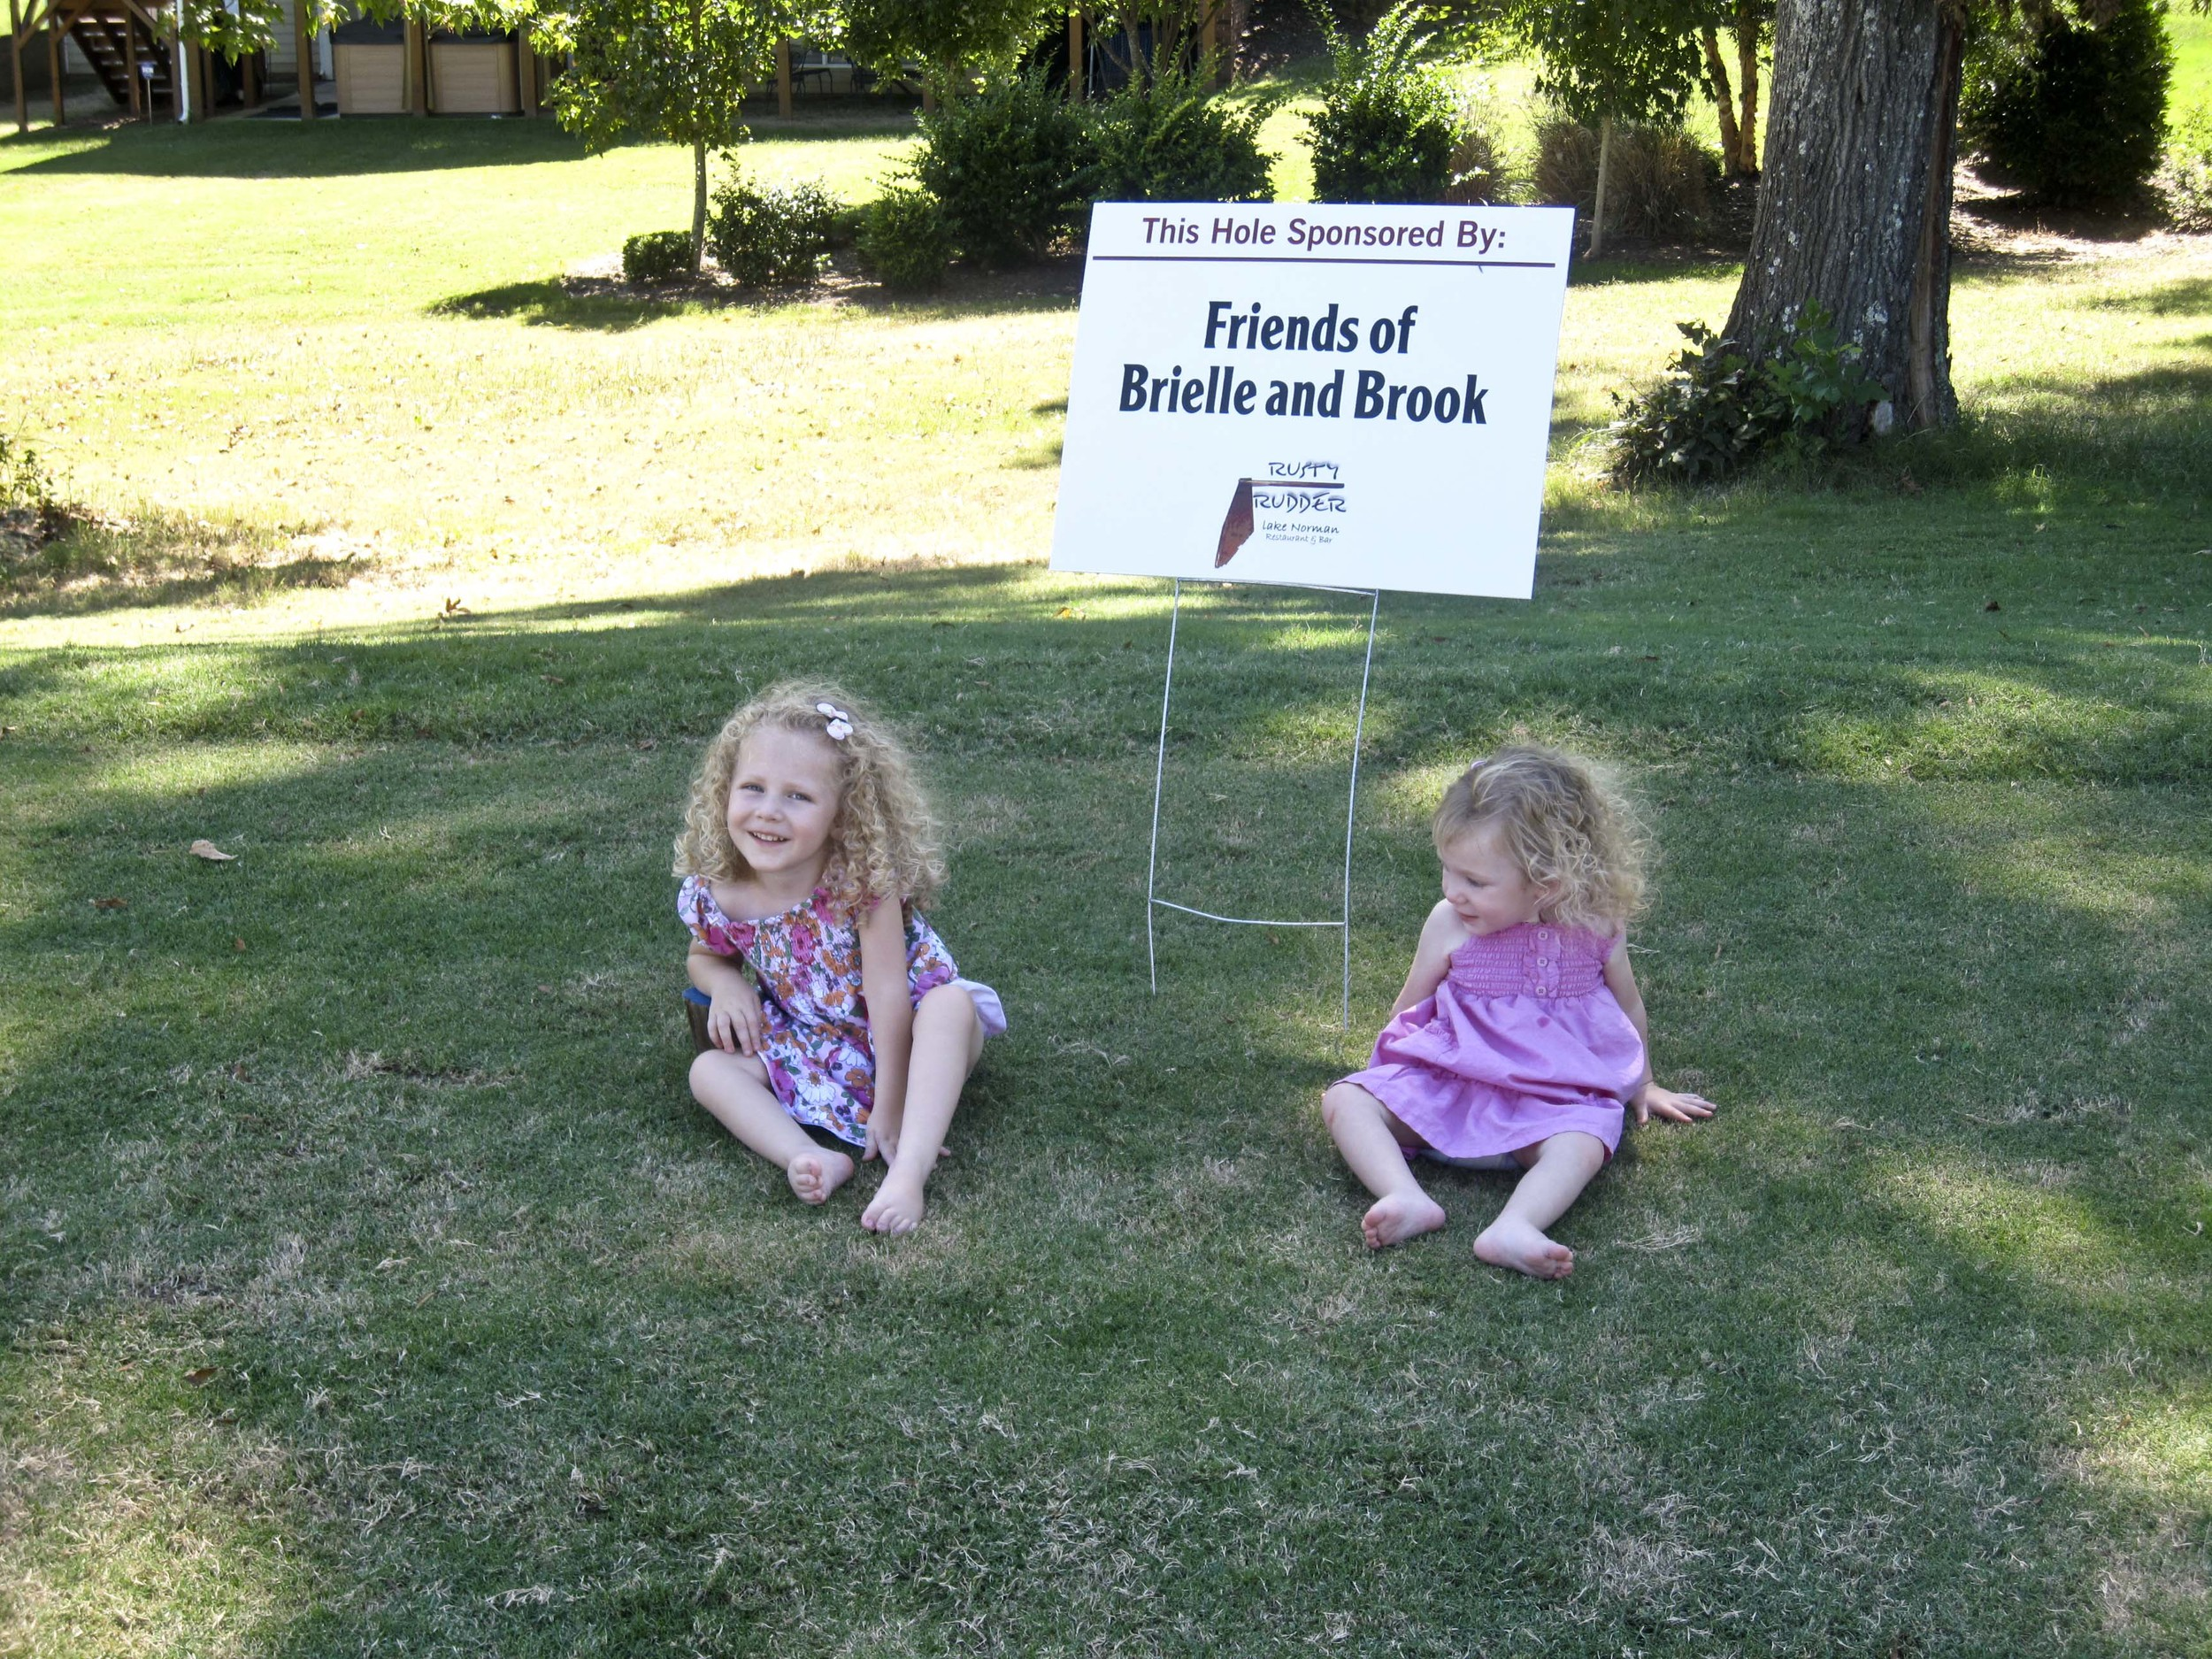 Complimentary sponsorship by Friends of Brielle & Brooke.